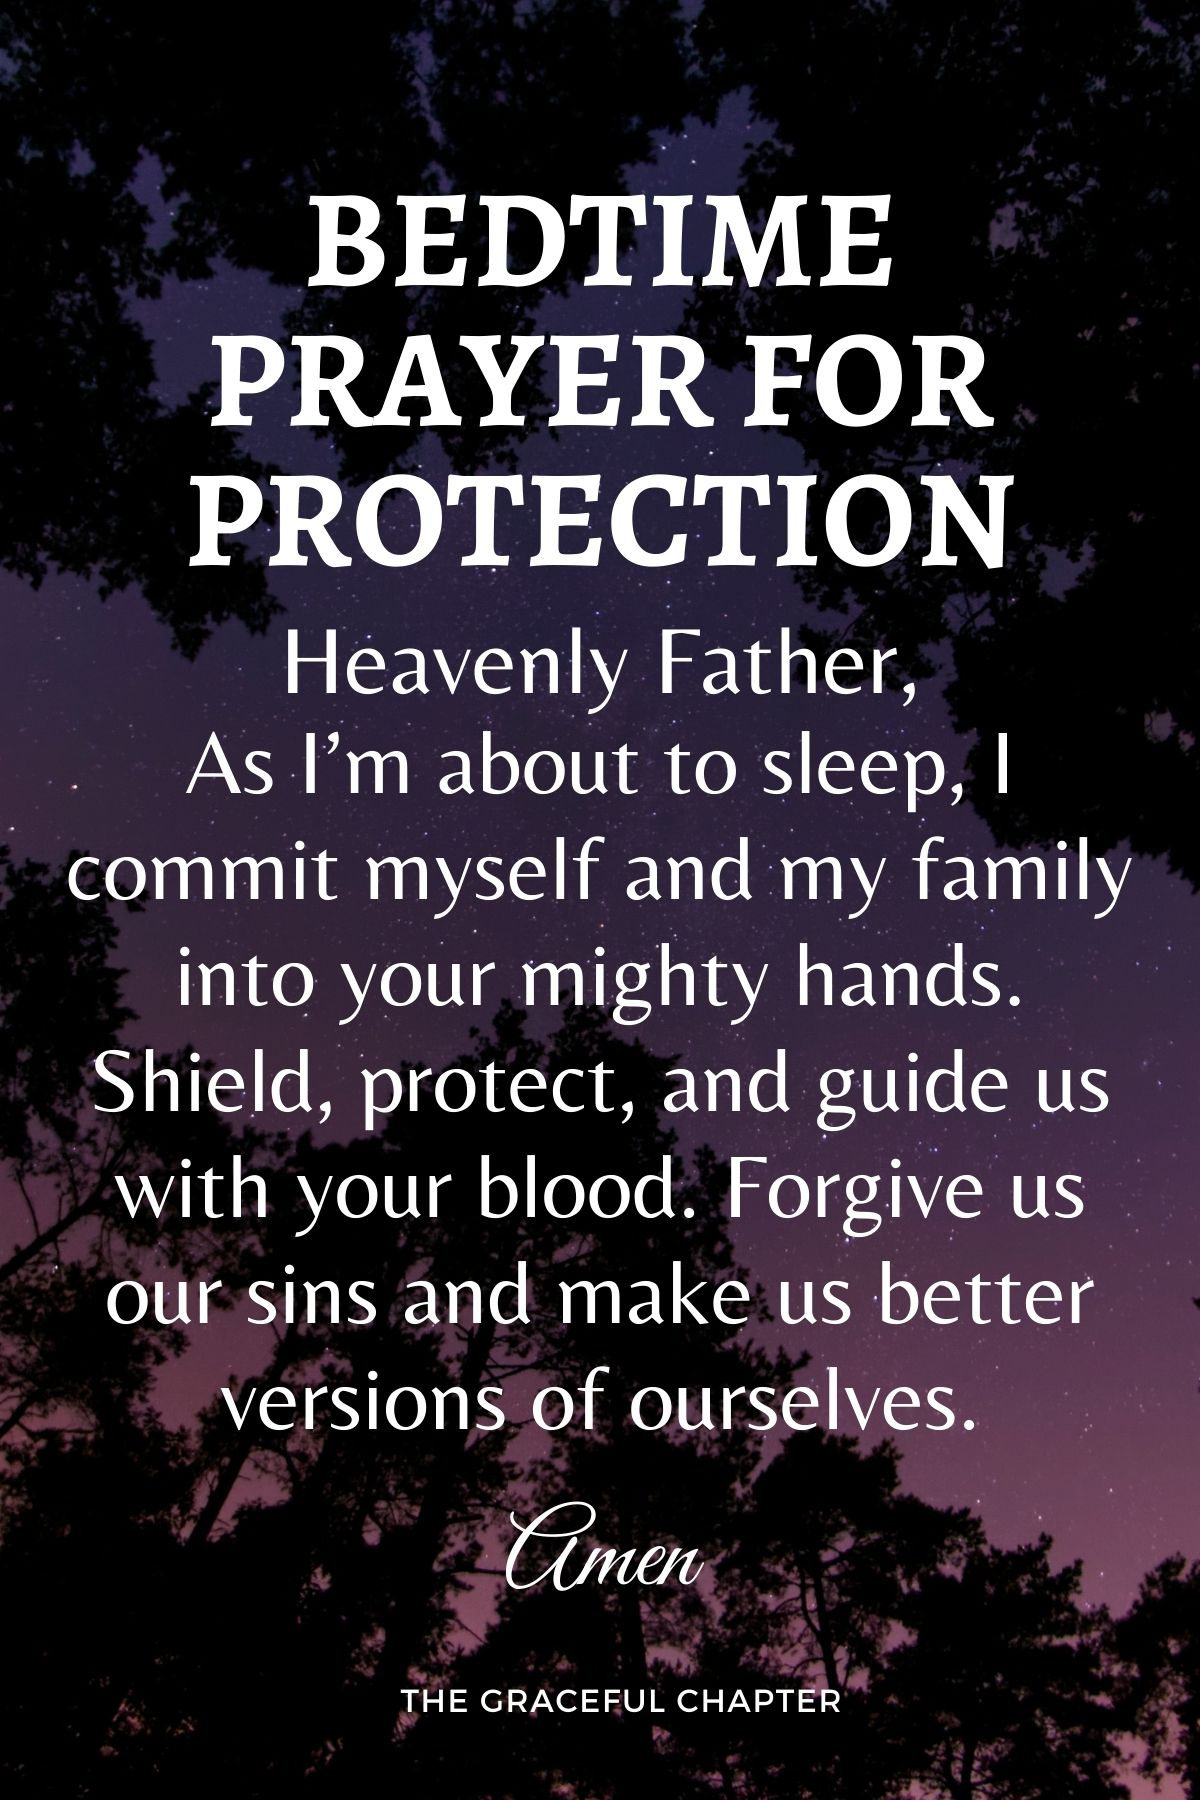 Bedtime prayer for protection